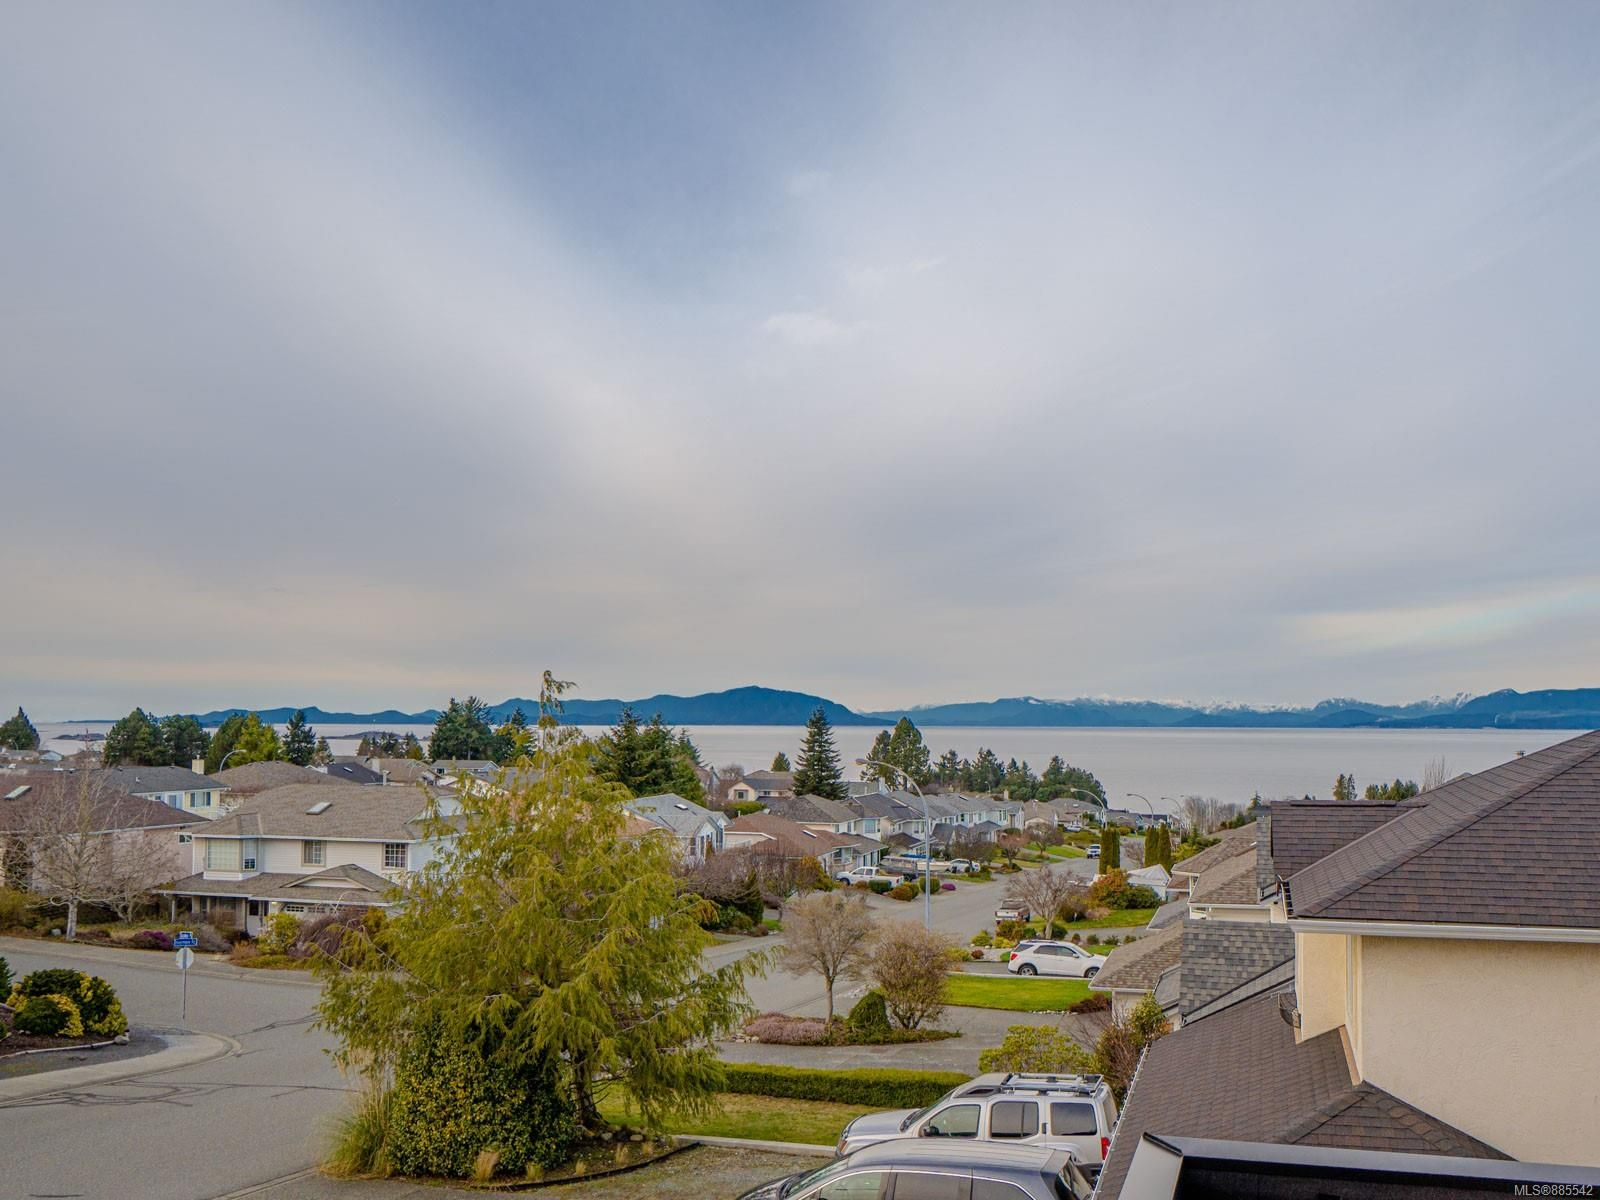 Photo 49: Photos: 6278 Invermere Rd in : Na North Nanaimo House for sale (Nanaimo)  : MLS®# 885542